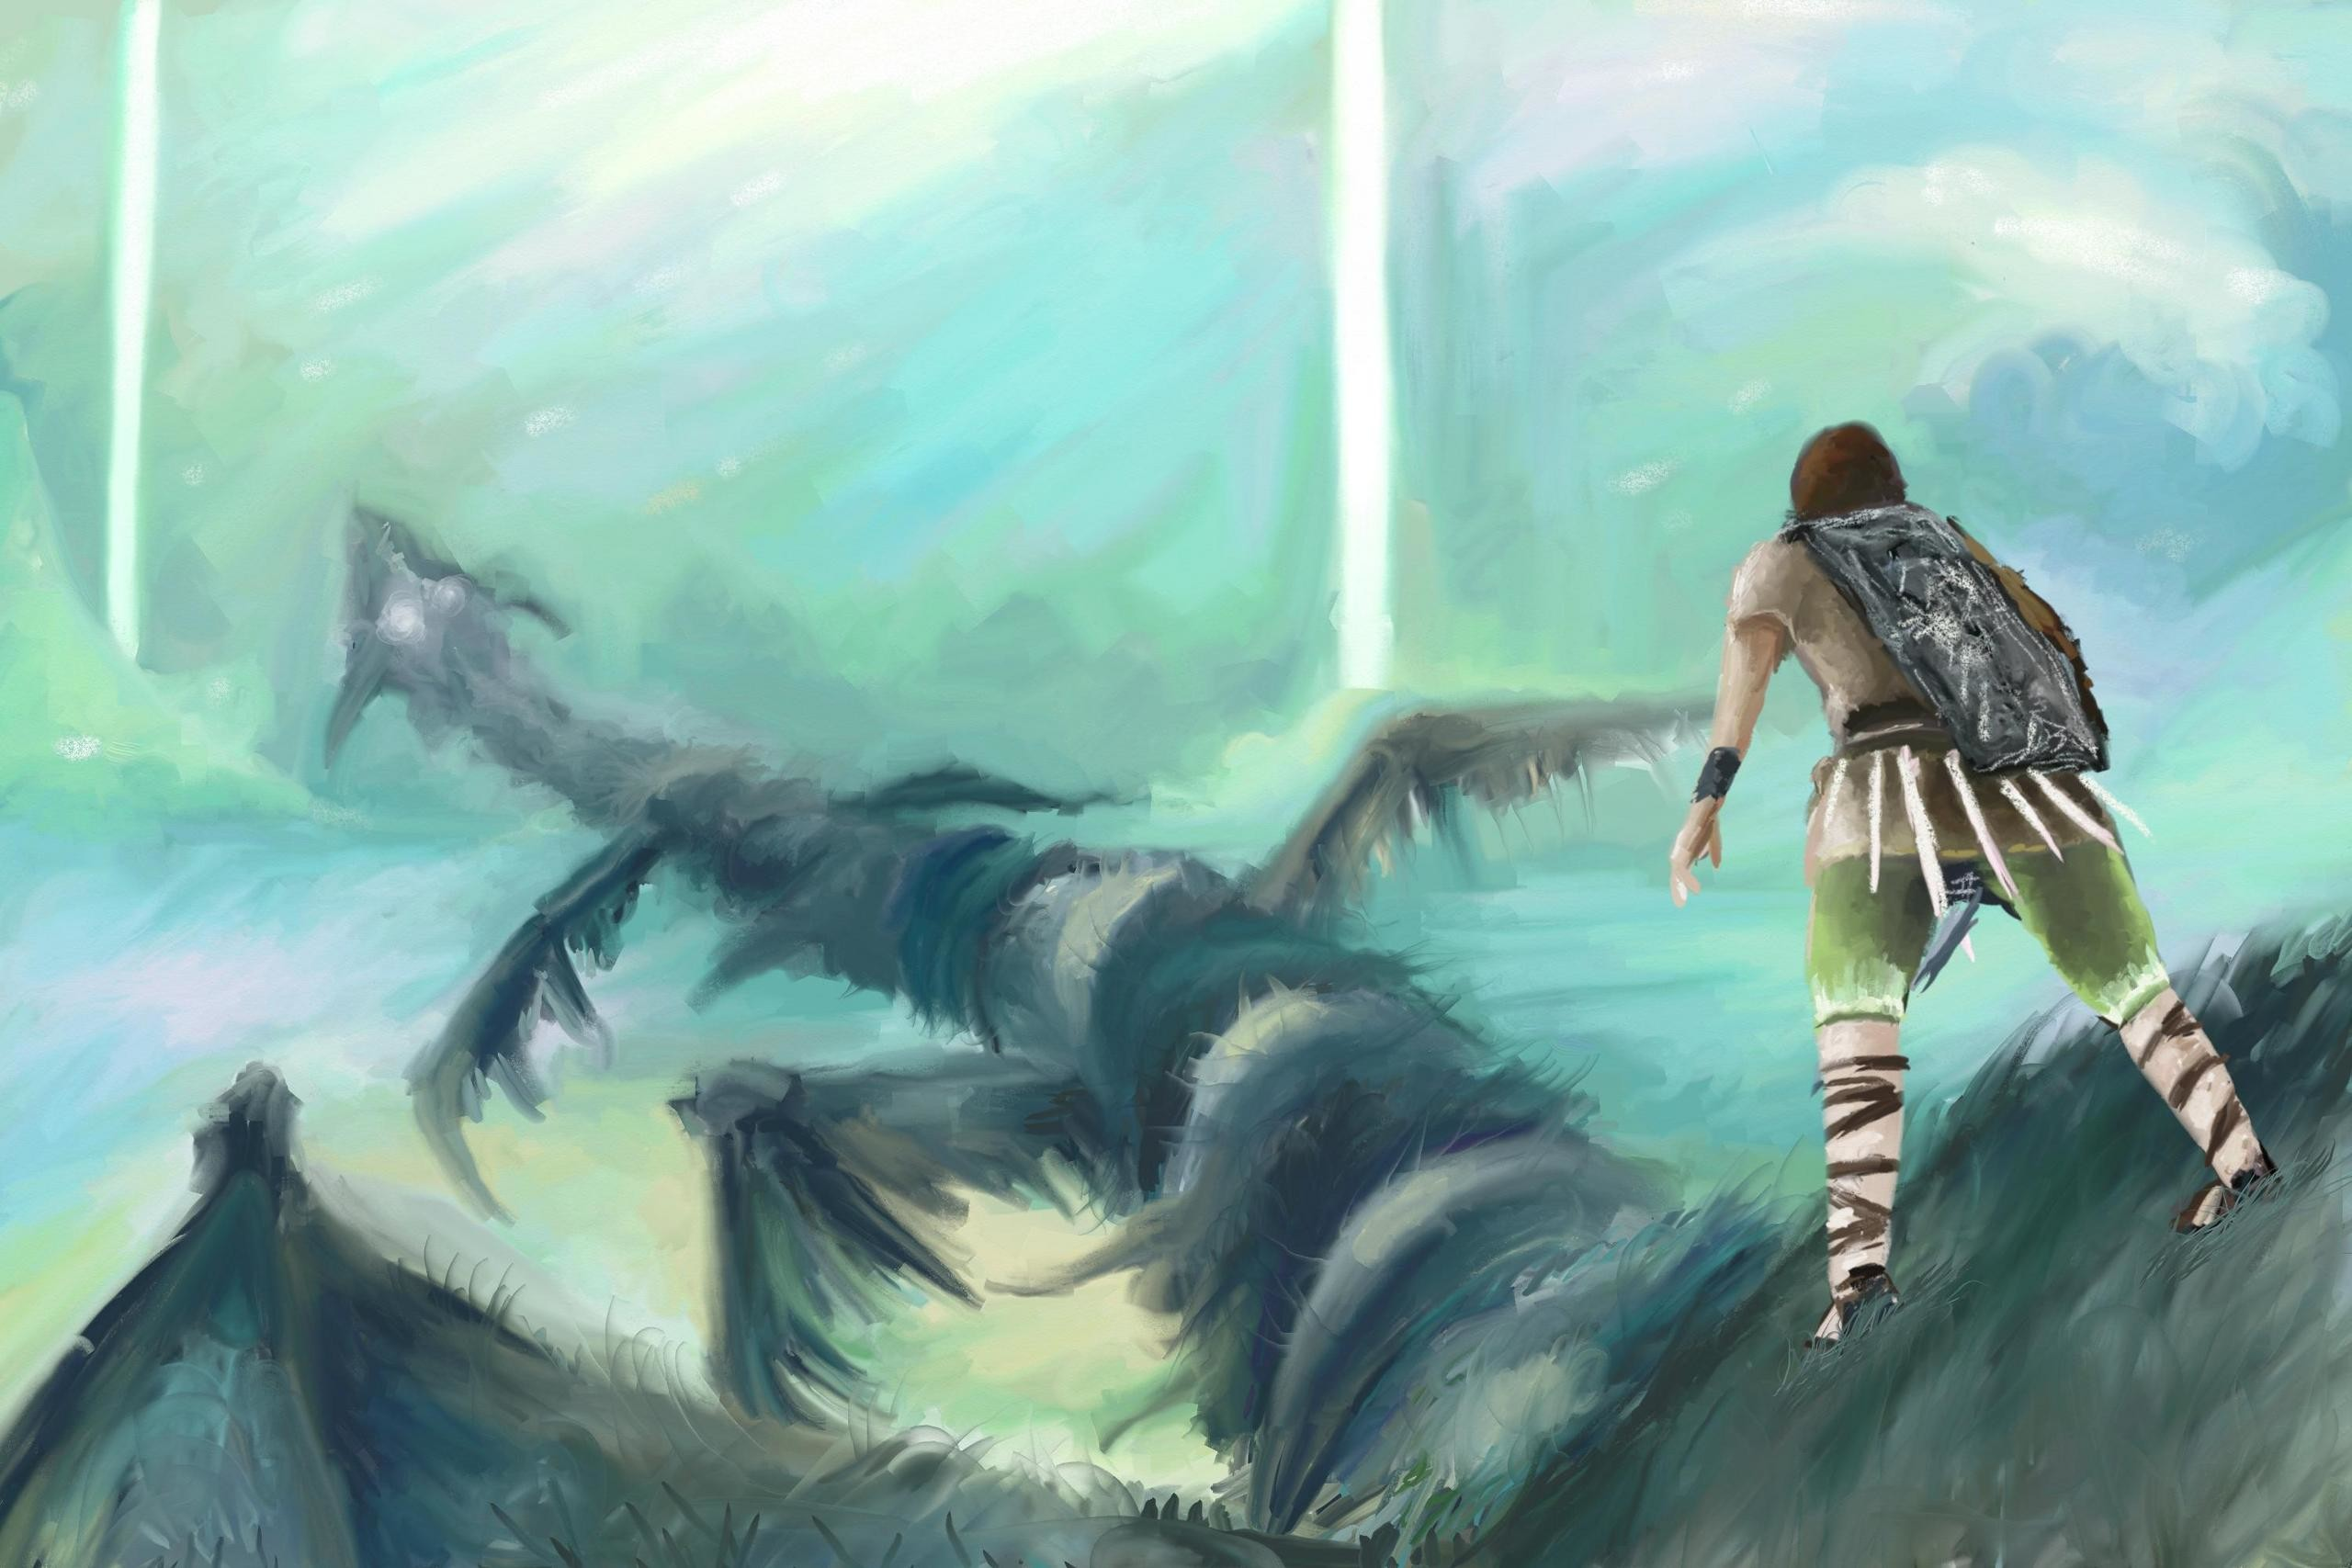 Shadow of the Colossus images whach your step HD wallpaper and background  photos